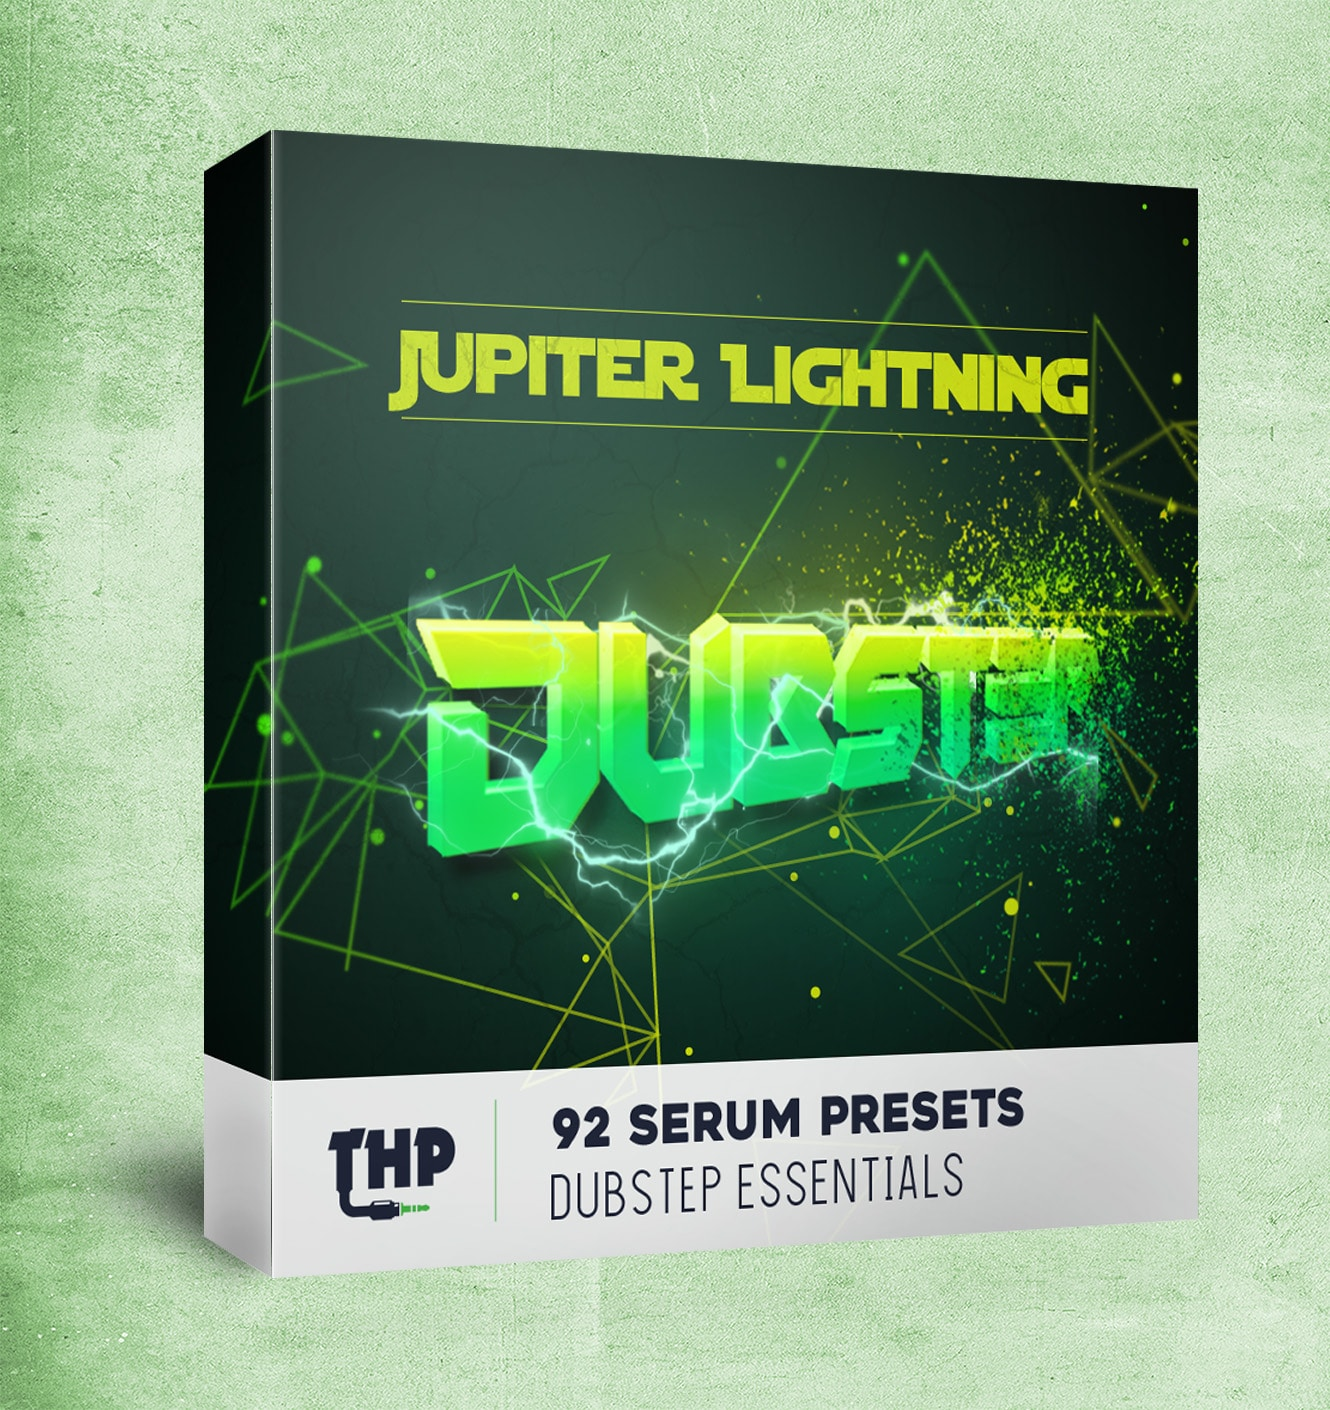 93 Presets for Serum In Dubstep Genre